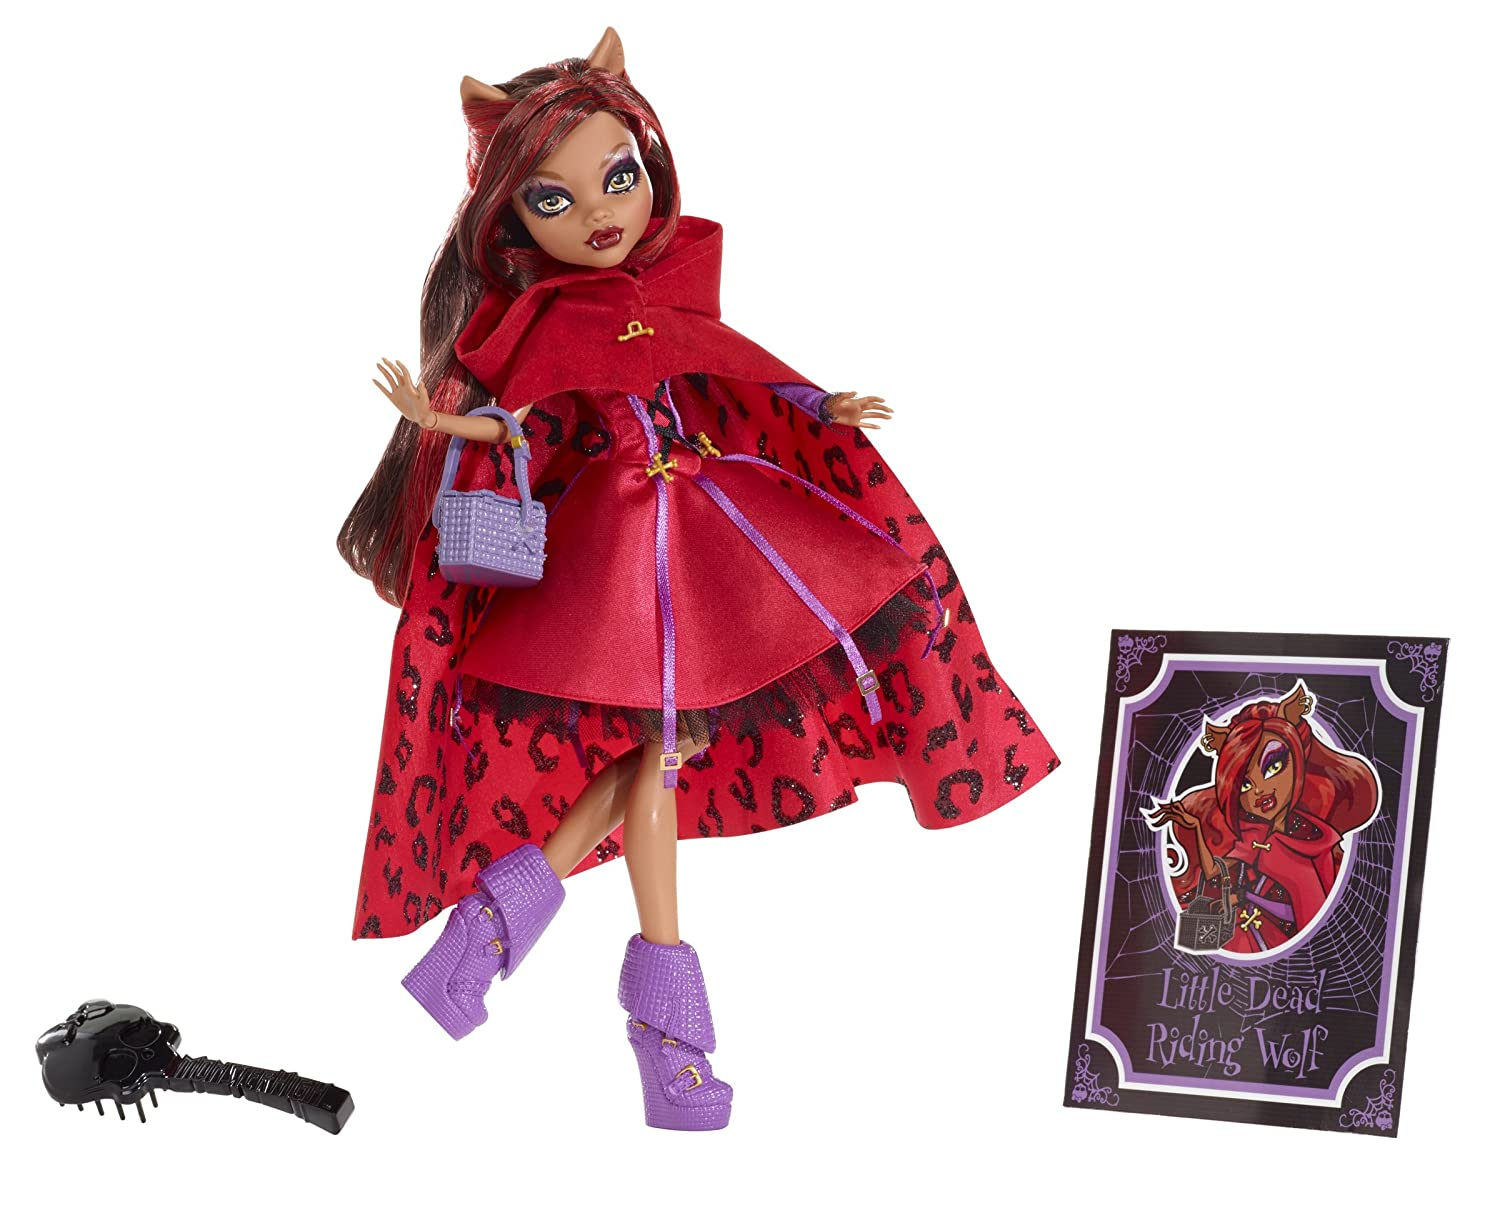 Monster High Svoiturey Tales Poupée Clawdeen Wolf - Peu Dead Riding Wolf